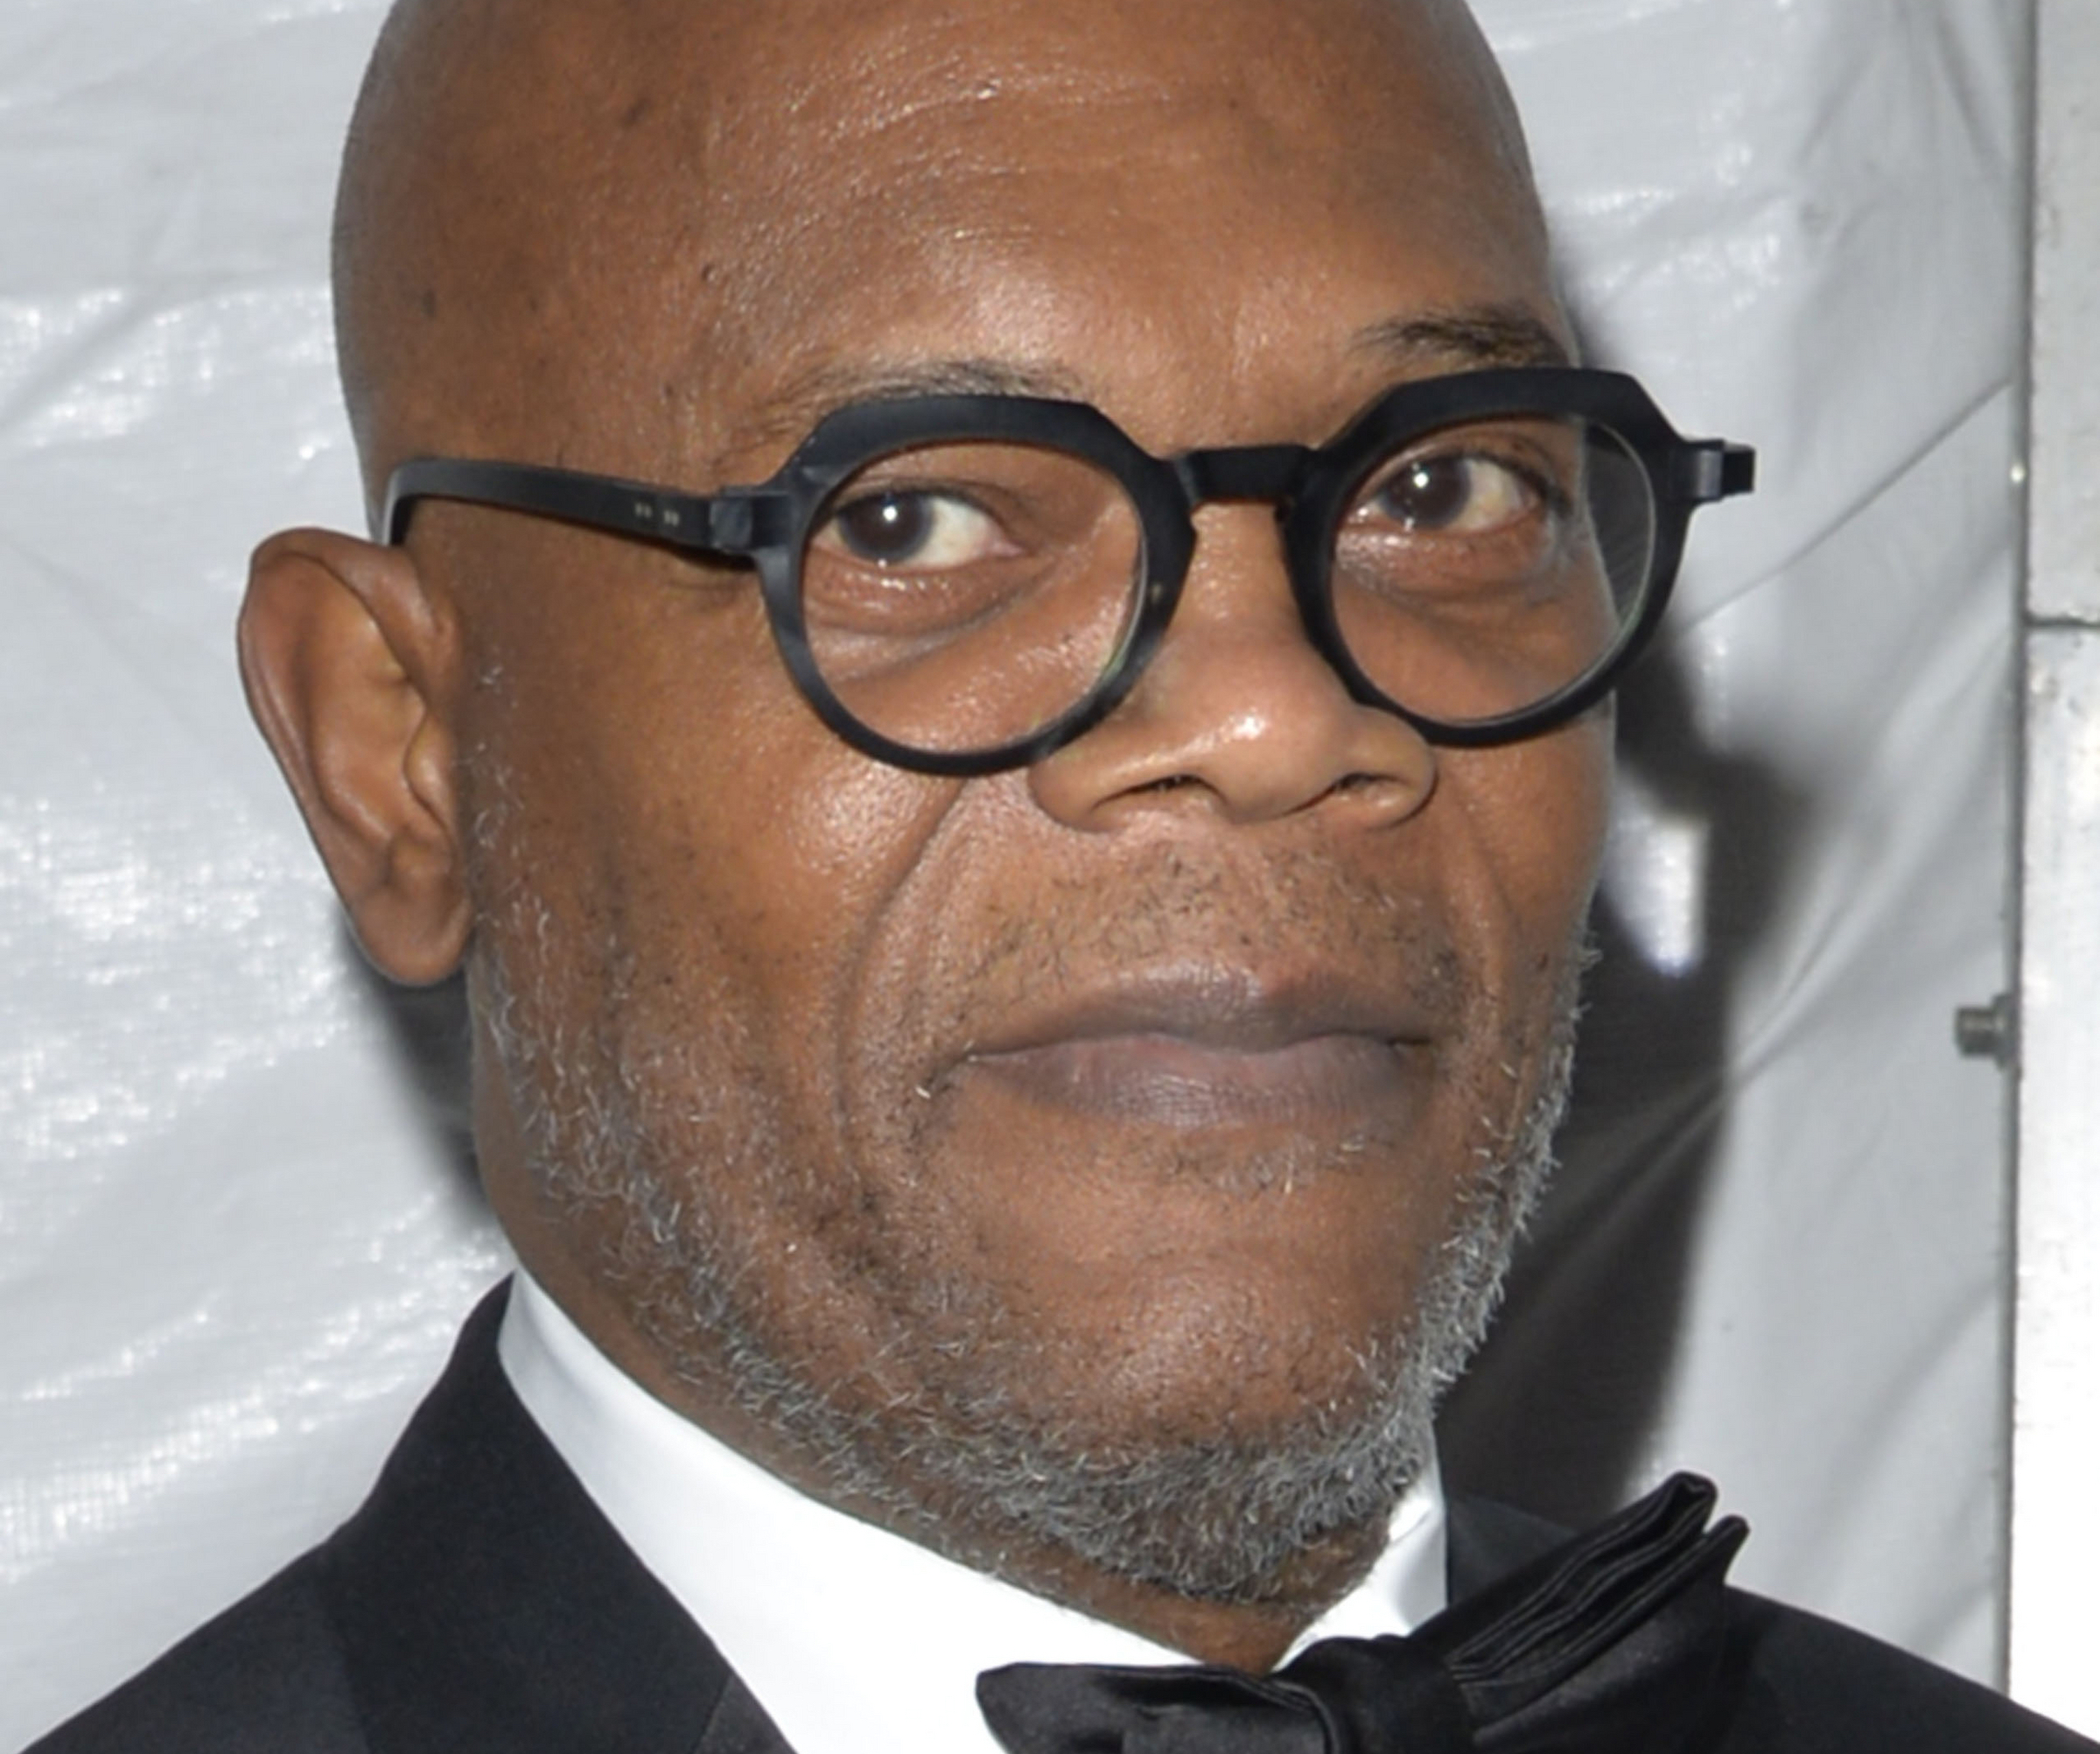 02/04/2017 - Samuel L. Jackson - 31st Annual American Society of Cinematographers Awards at the Ray Dolby Ballroom in Hollywood - Arrivals - Ray Dolby Ballroom - Hollywood, CA, USA - Keywords: Orientation: Portrait Face Count: 1 - False - Photo Credit: Koi Sojer / PR Photos - Contact (1-866-551-7827) - Portrait Face Count: 1